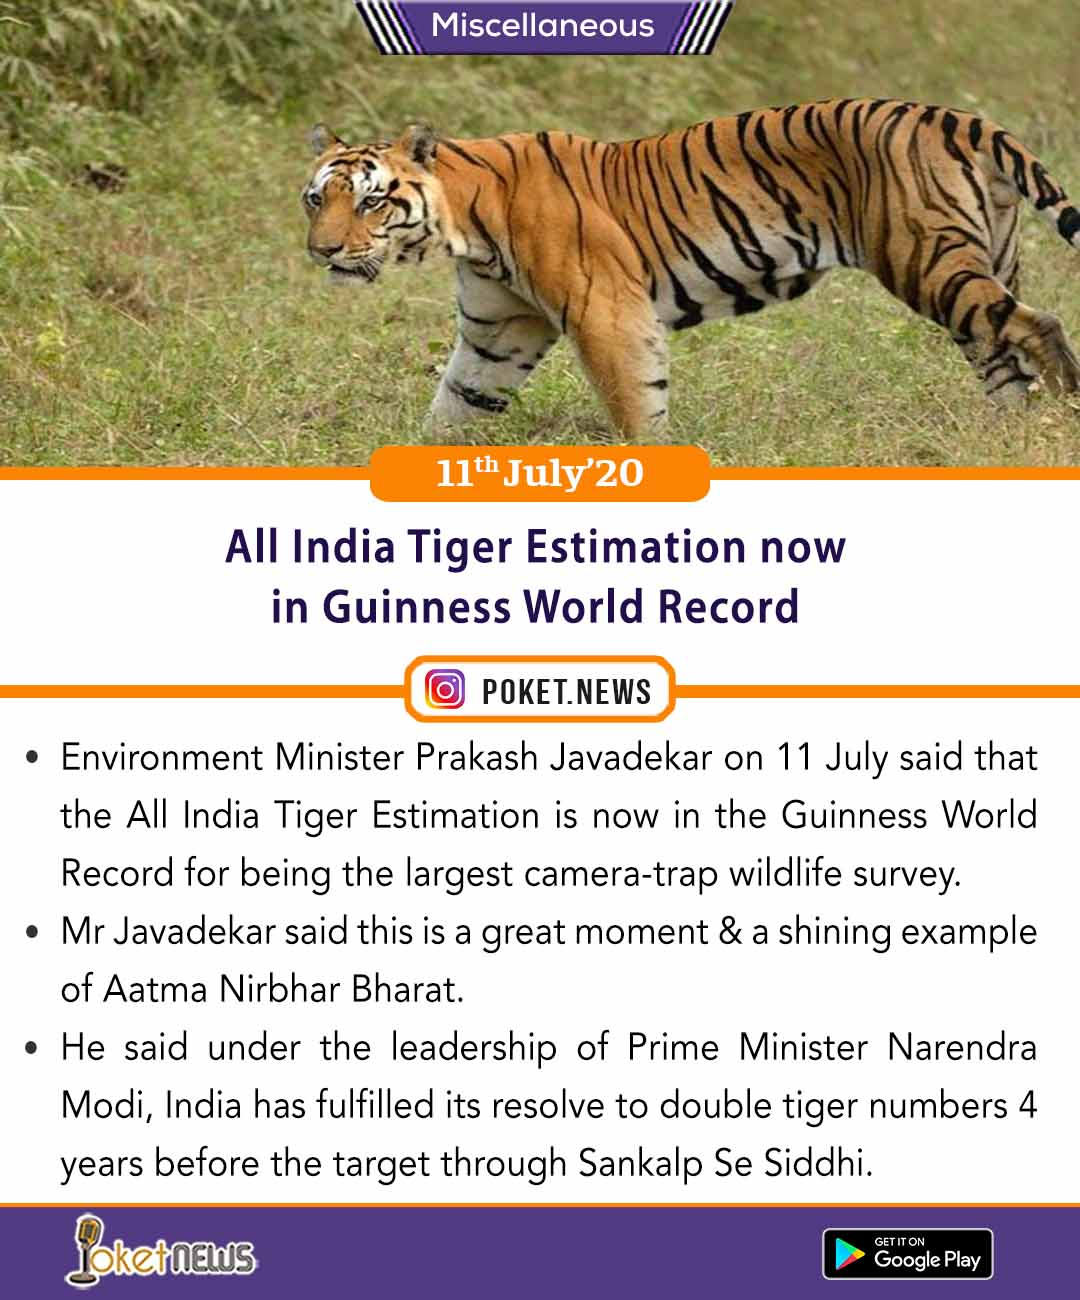 All India Tiger Estimation now in Guinness World Record